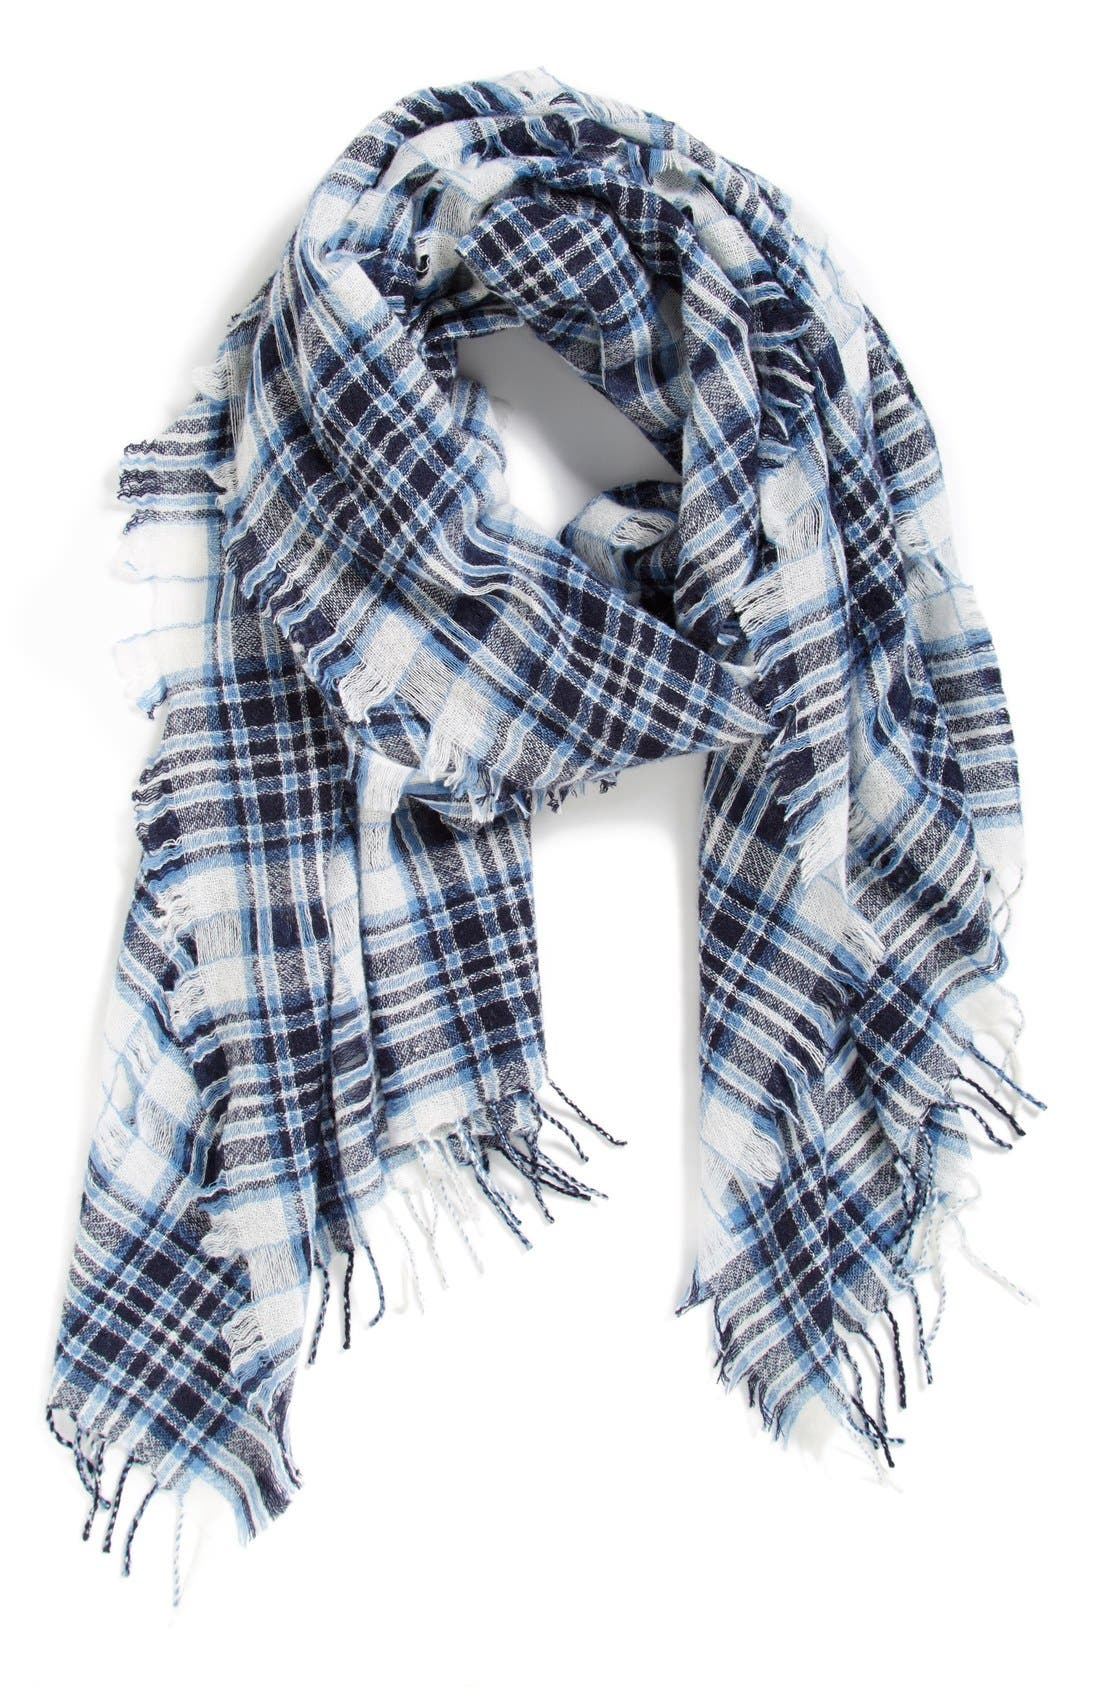 Alternate Image 1 Selected - Madewell'Fulton Plaid' Open Weave Scarf